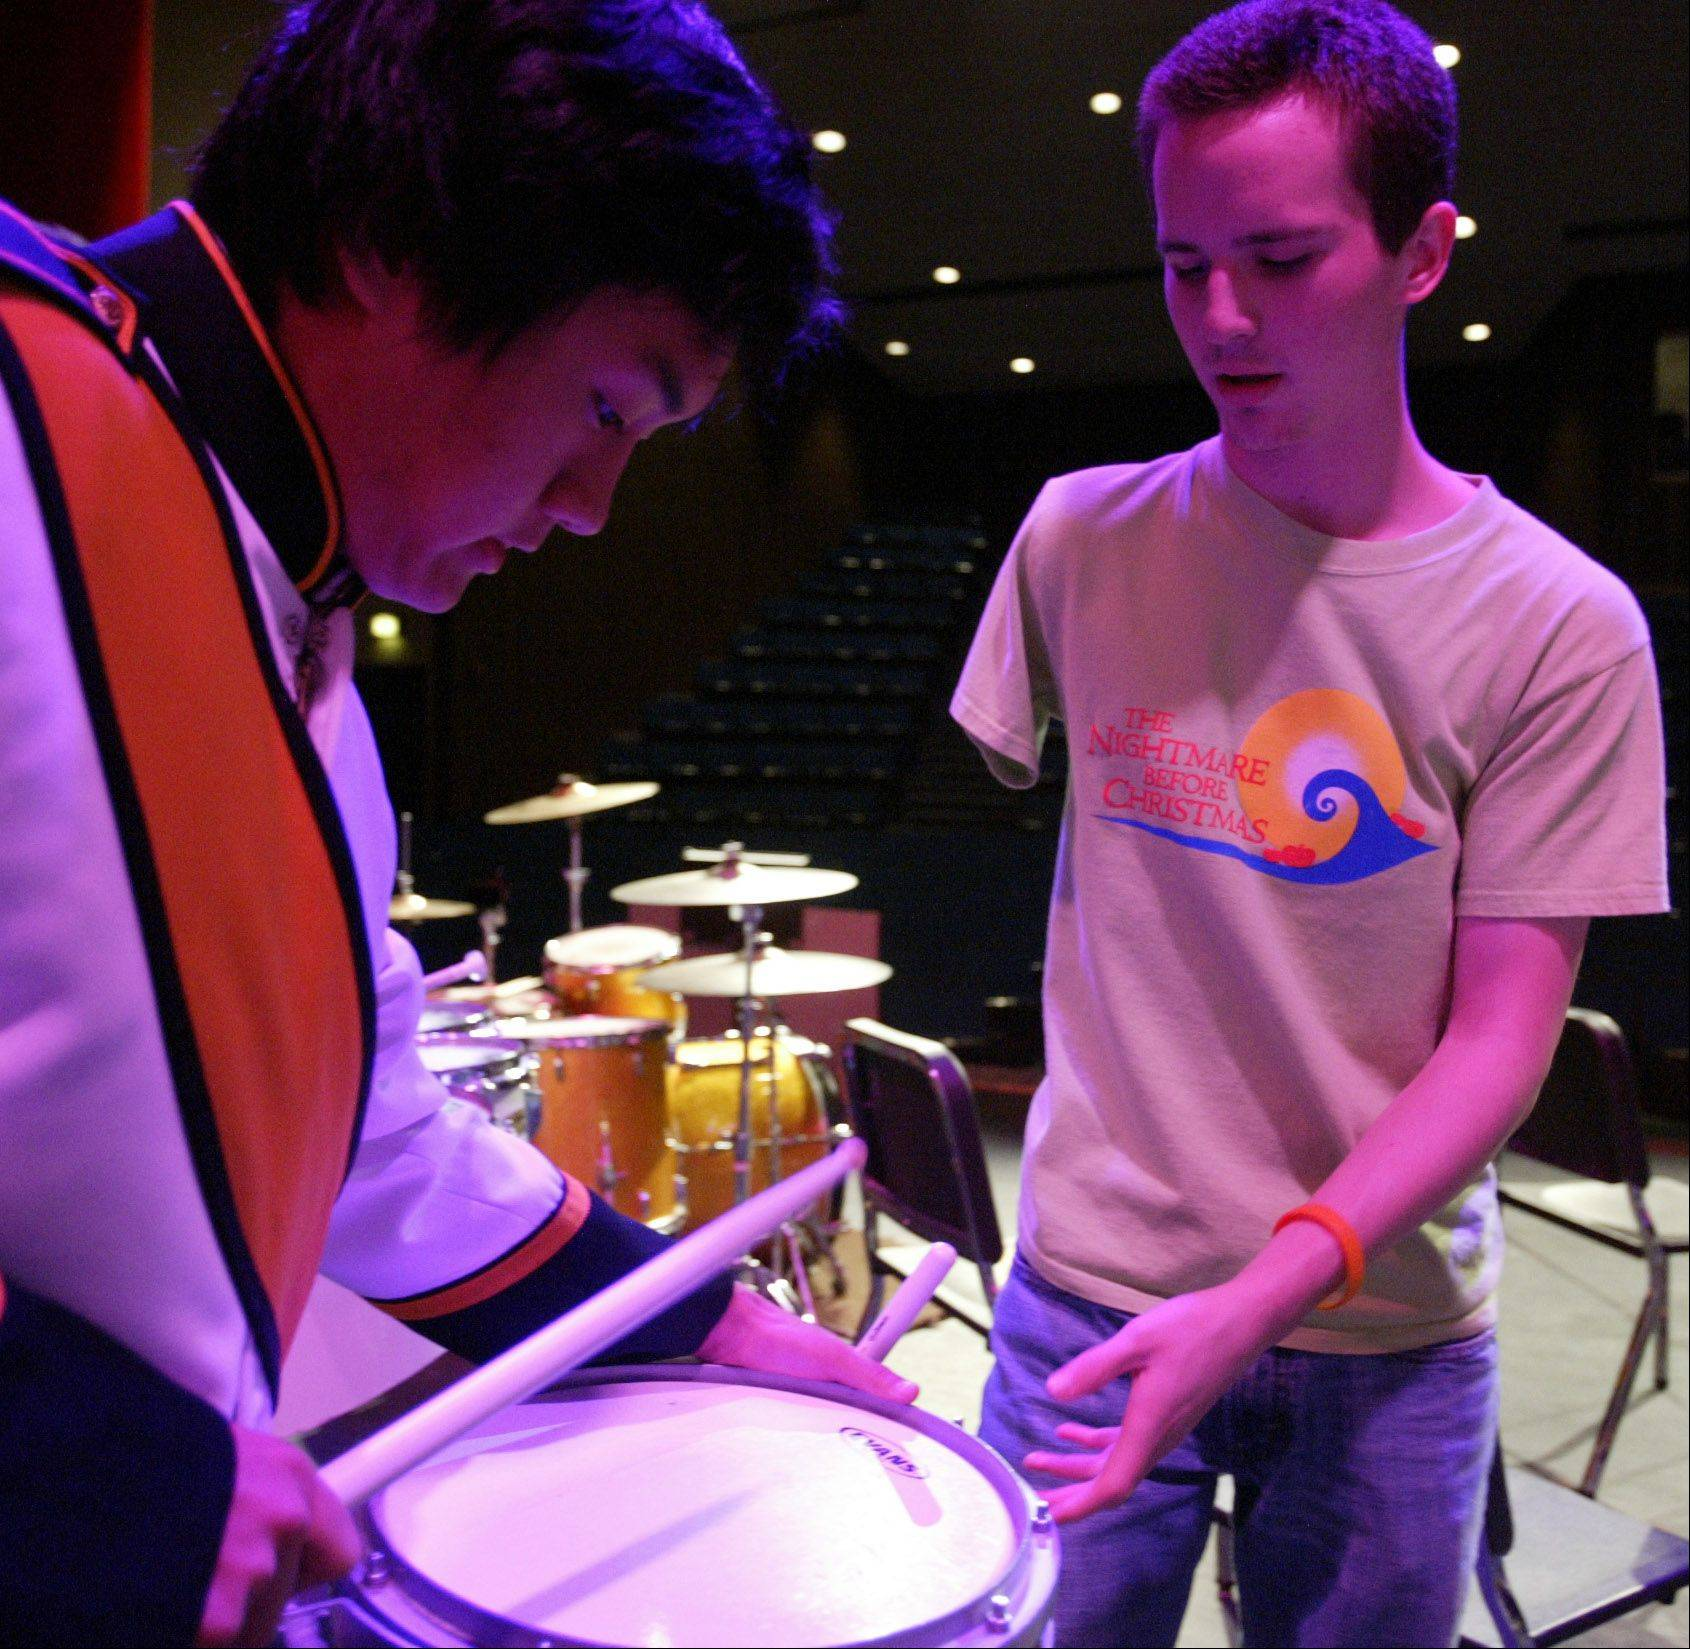 Justin Miller, 19, of Streamwood, helps the Streamwood High School drum line warm up before their school concert Oct. 20. Miller, who has played drums since he was little, lost his dominant arm to cancer.